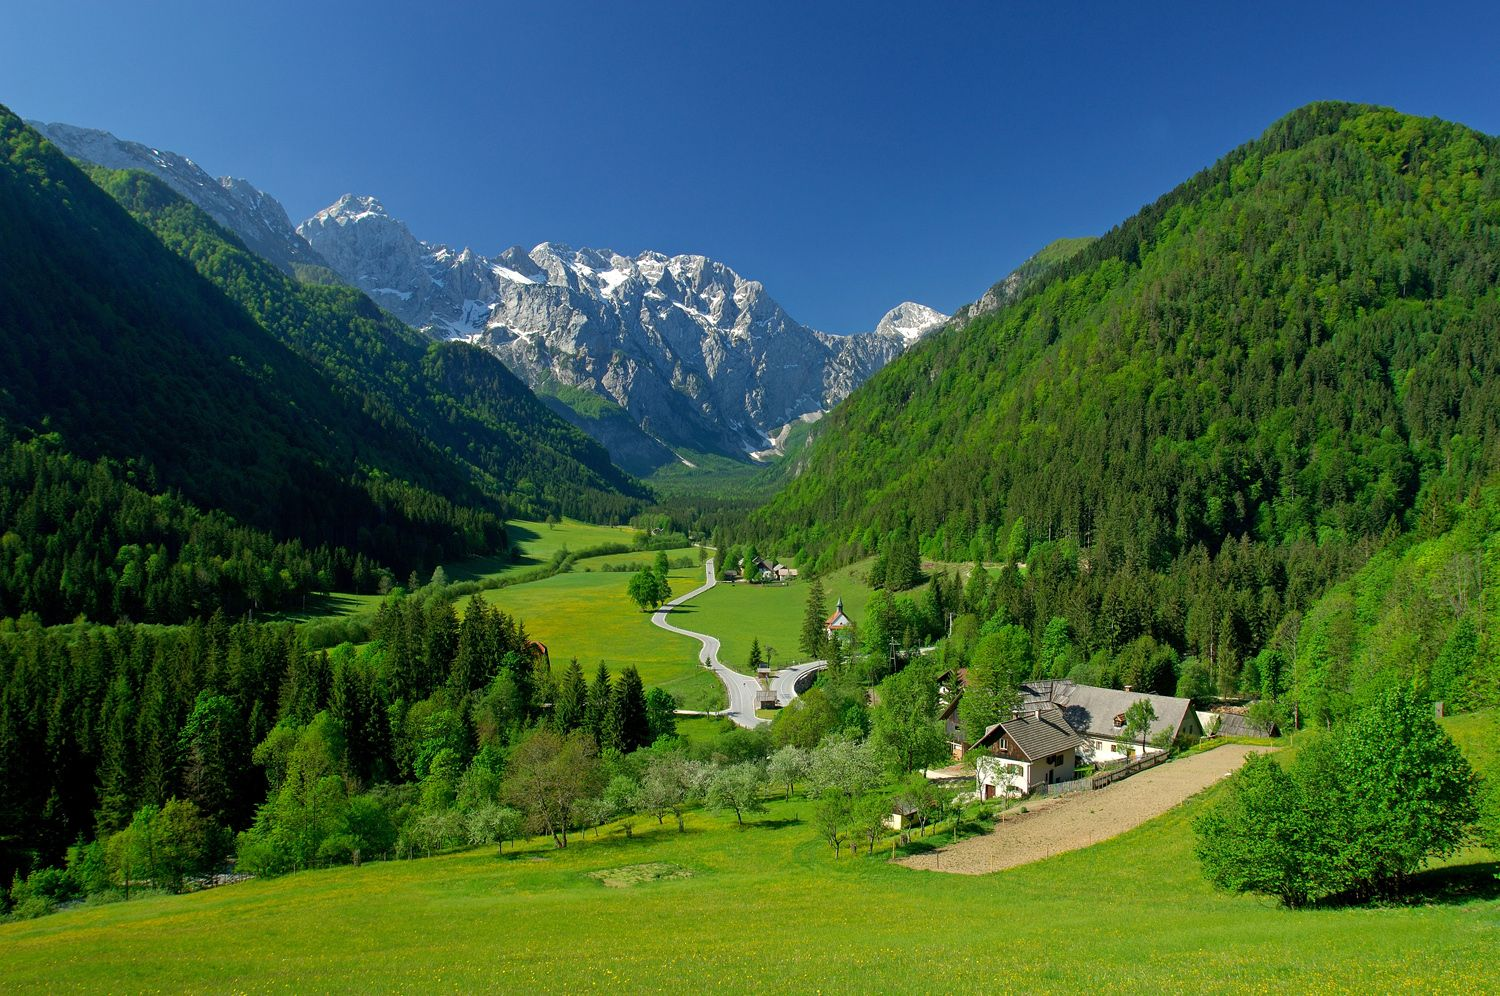 Beautiful Eastern Europe countries - landscapes, scenery, cities, people, beaches, mountains, palaces, castles